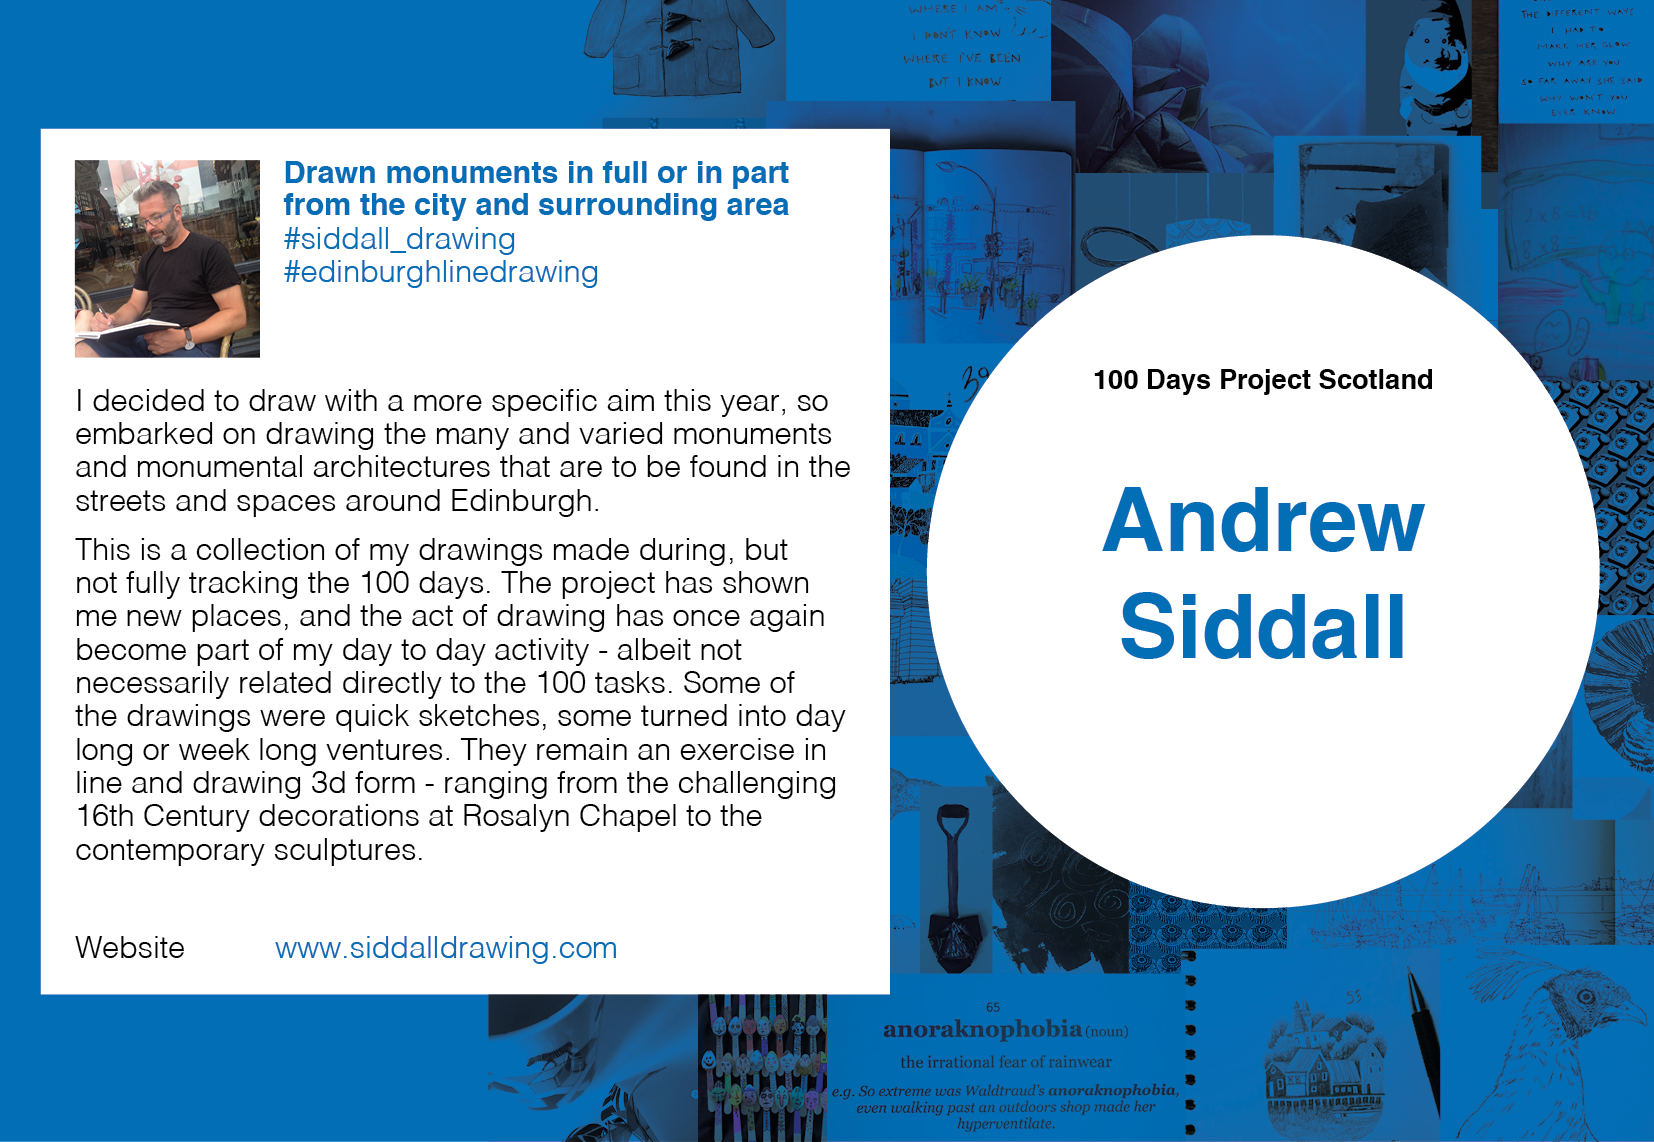 Andrew Siddall